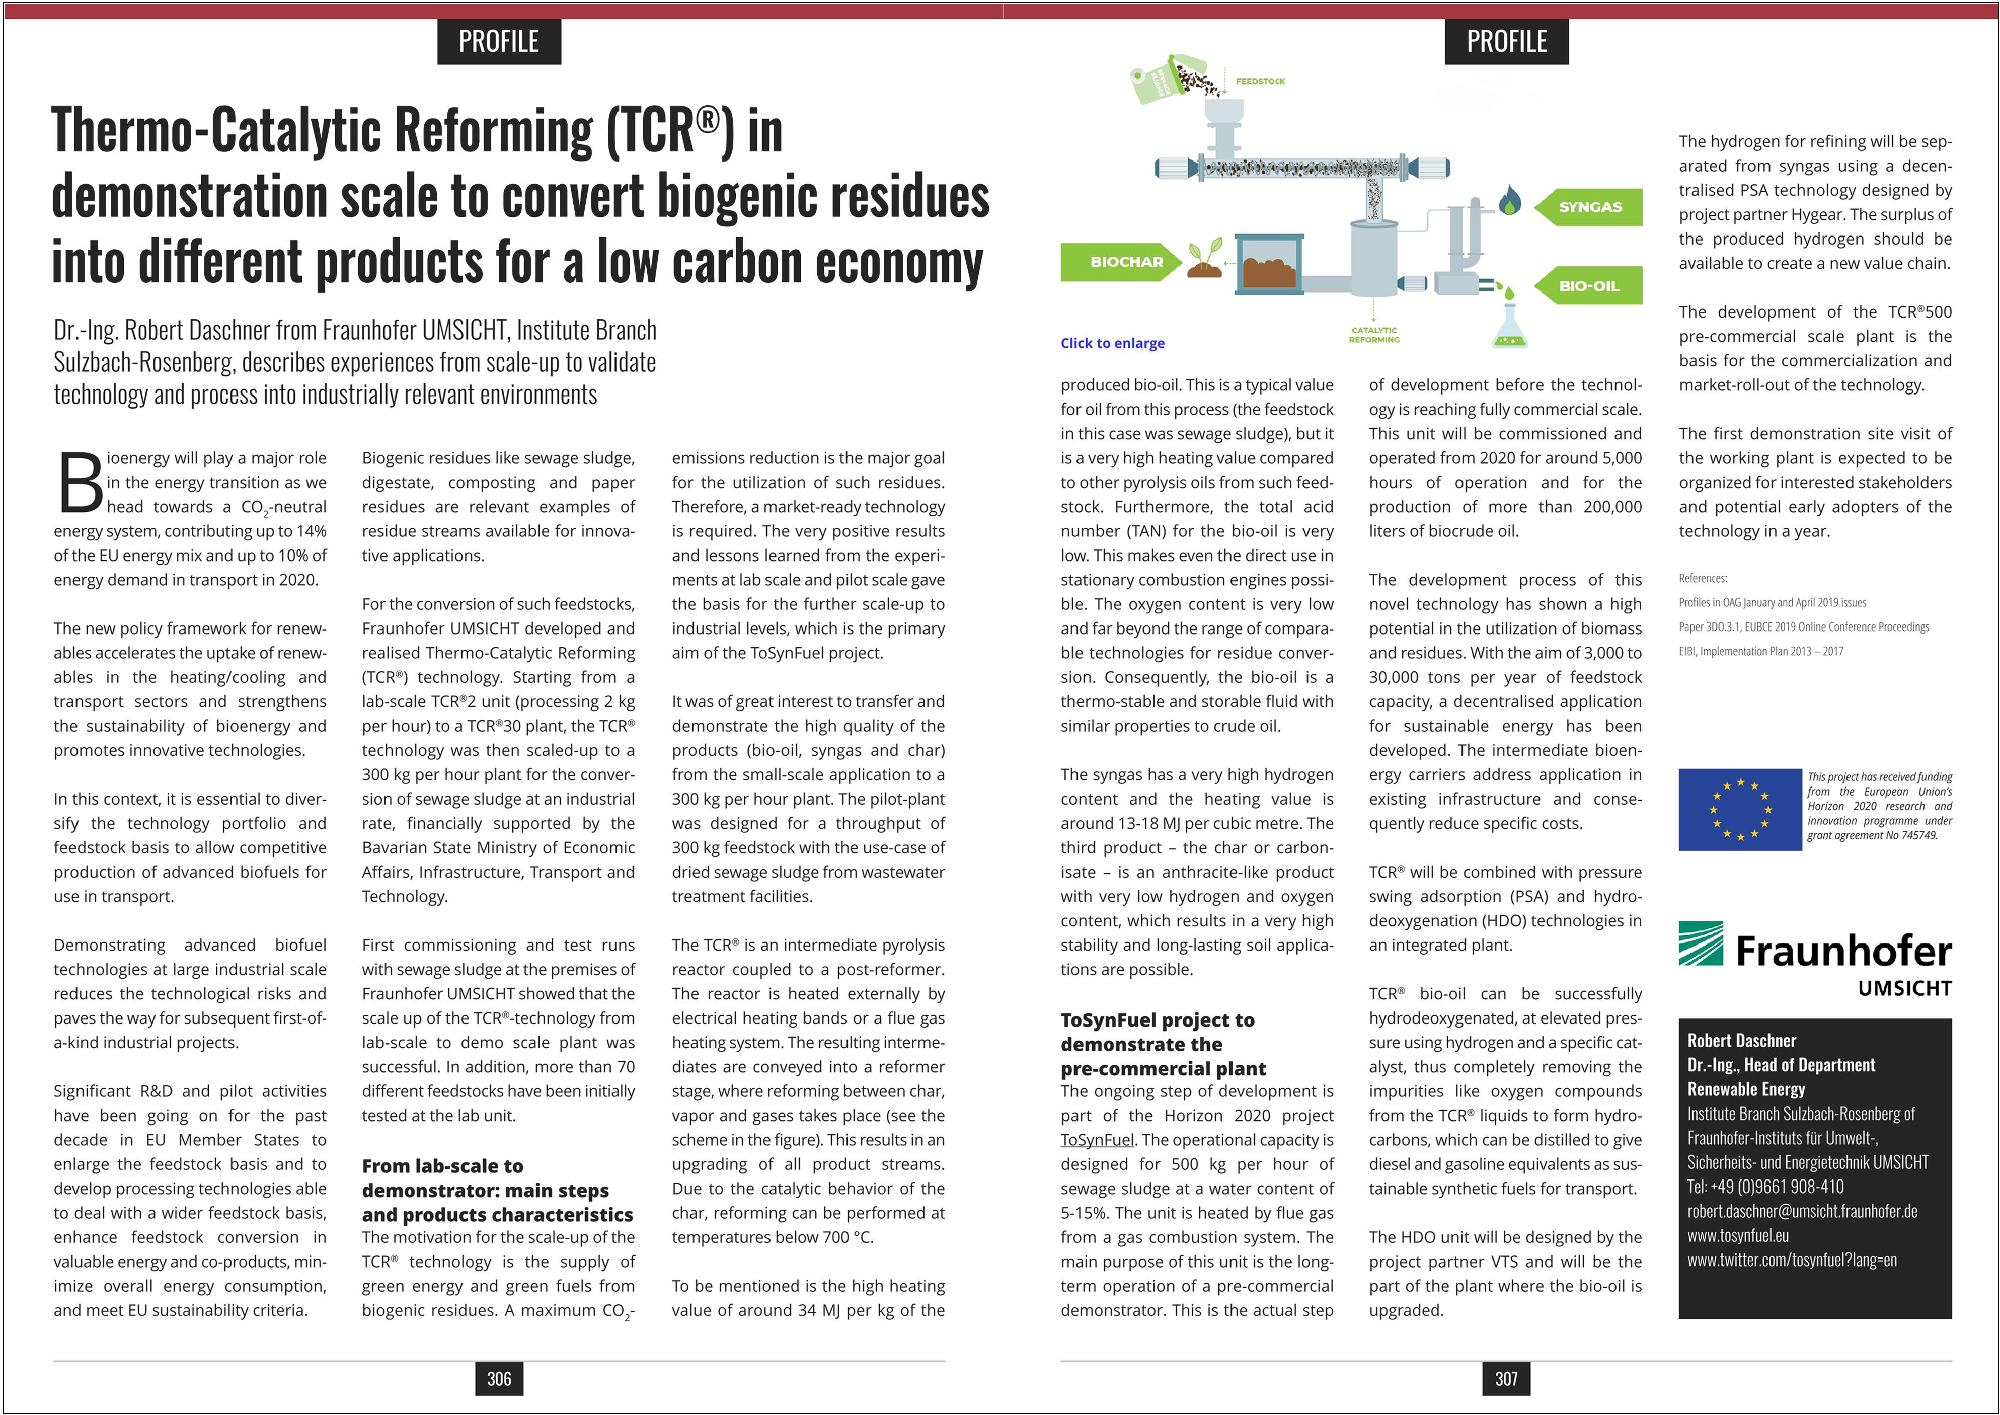 Thermo-Catalytic Reforming (TCR®) in demonstration scale to convert biogenic residues into different products for a low carbon economy